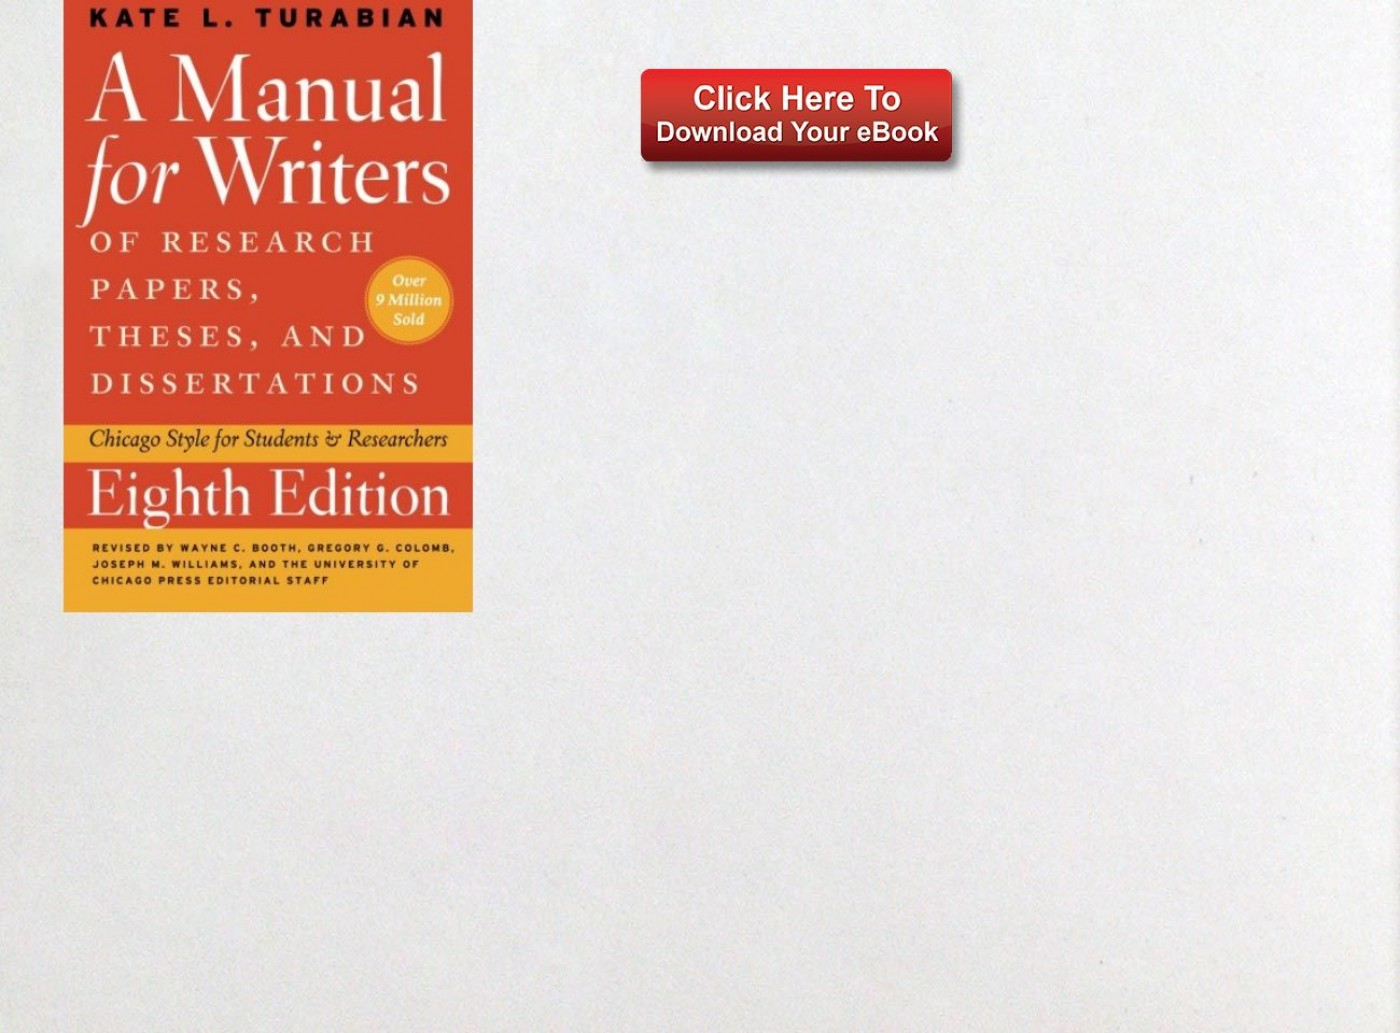 018 Source Manual For Writers Of Researchs Theses And Dissertations Ebook Unbelievable A Research Papers 1400